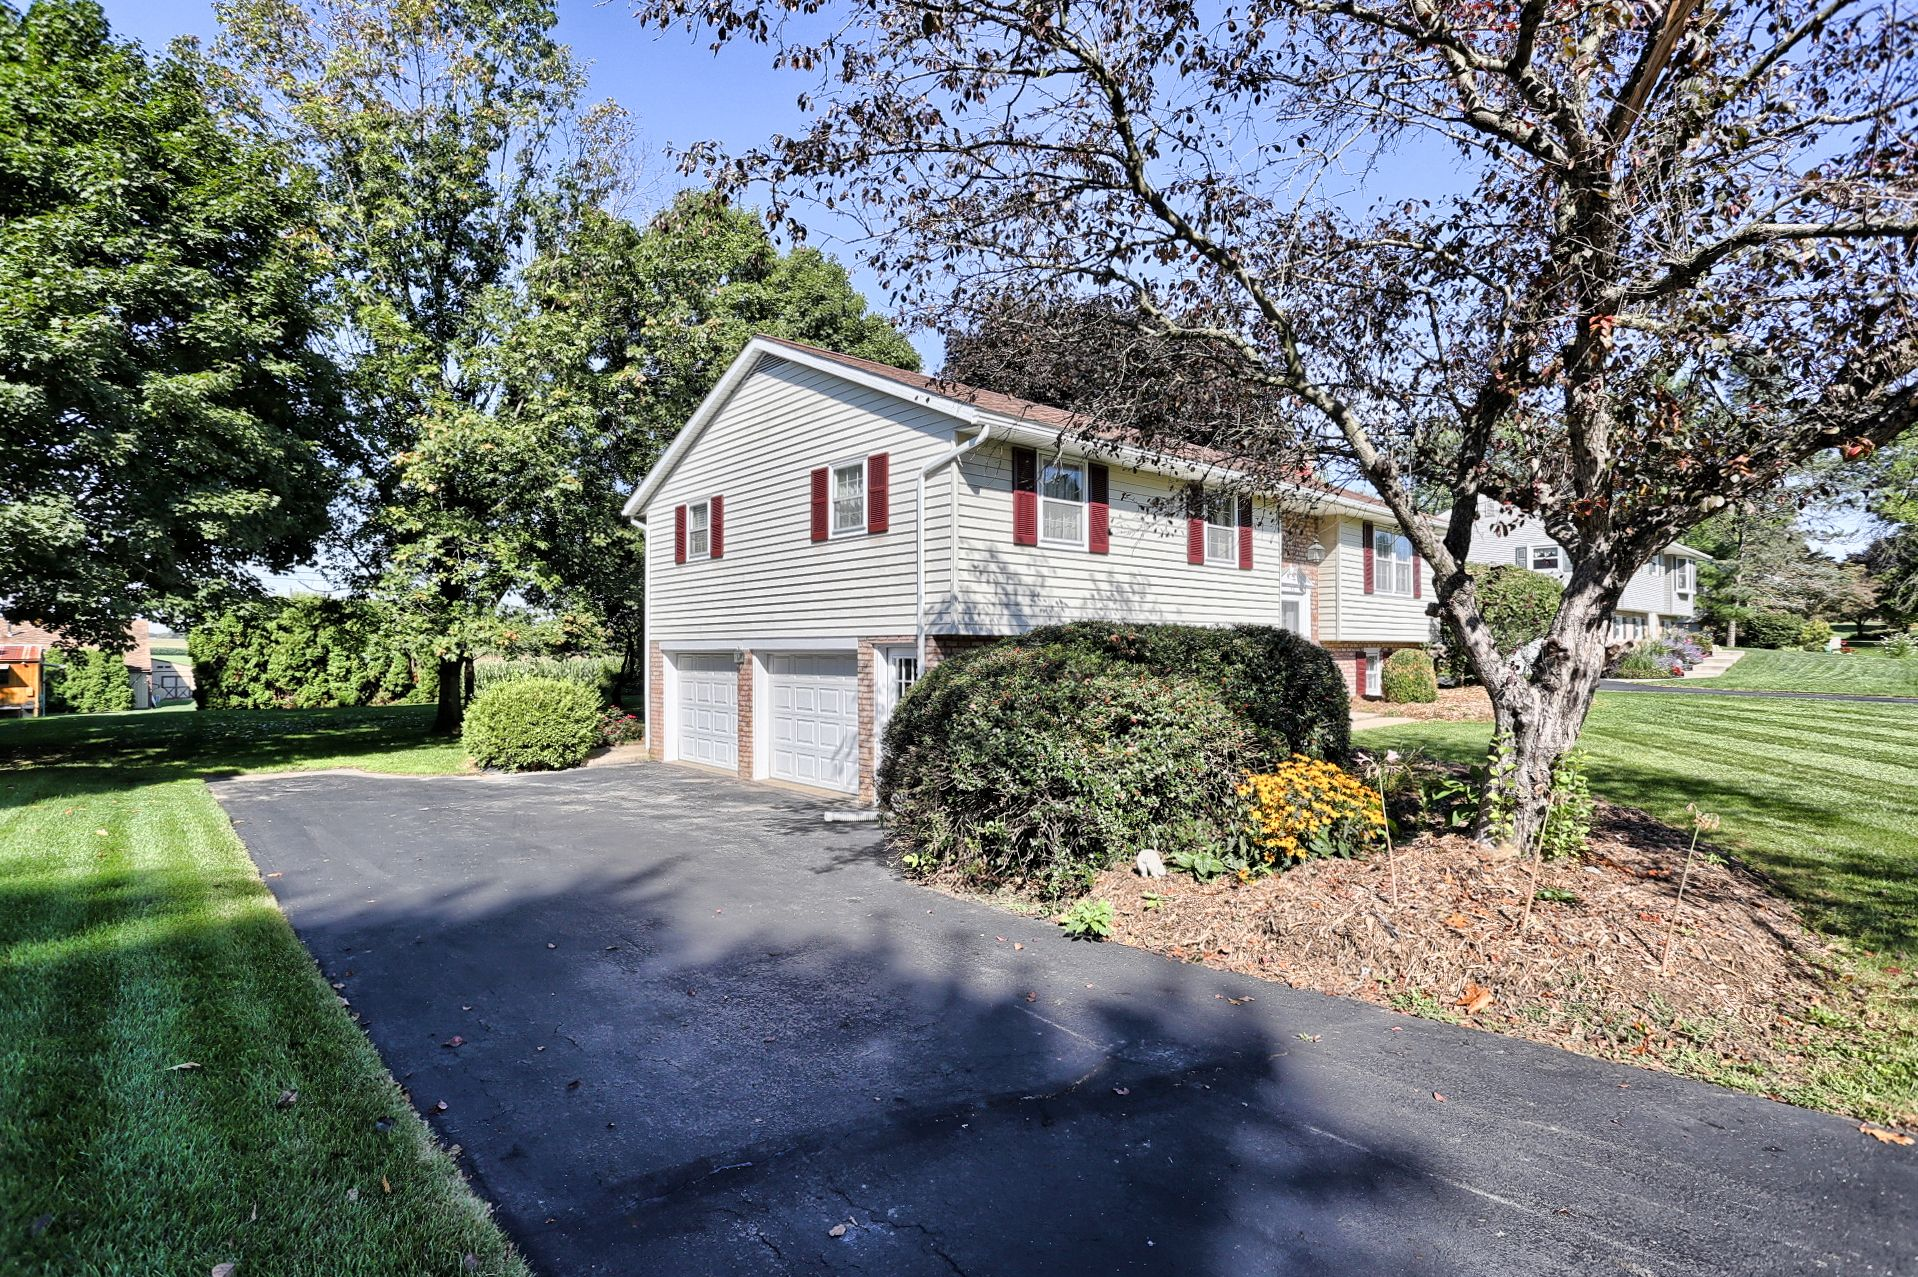 Side View Leola Pa Homesforsale Realestate Pennsylvania Sold